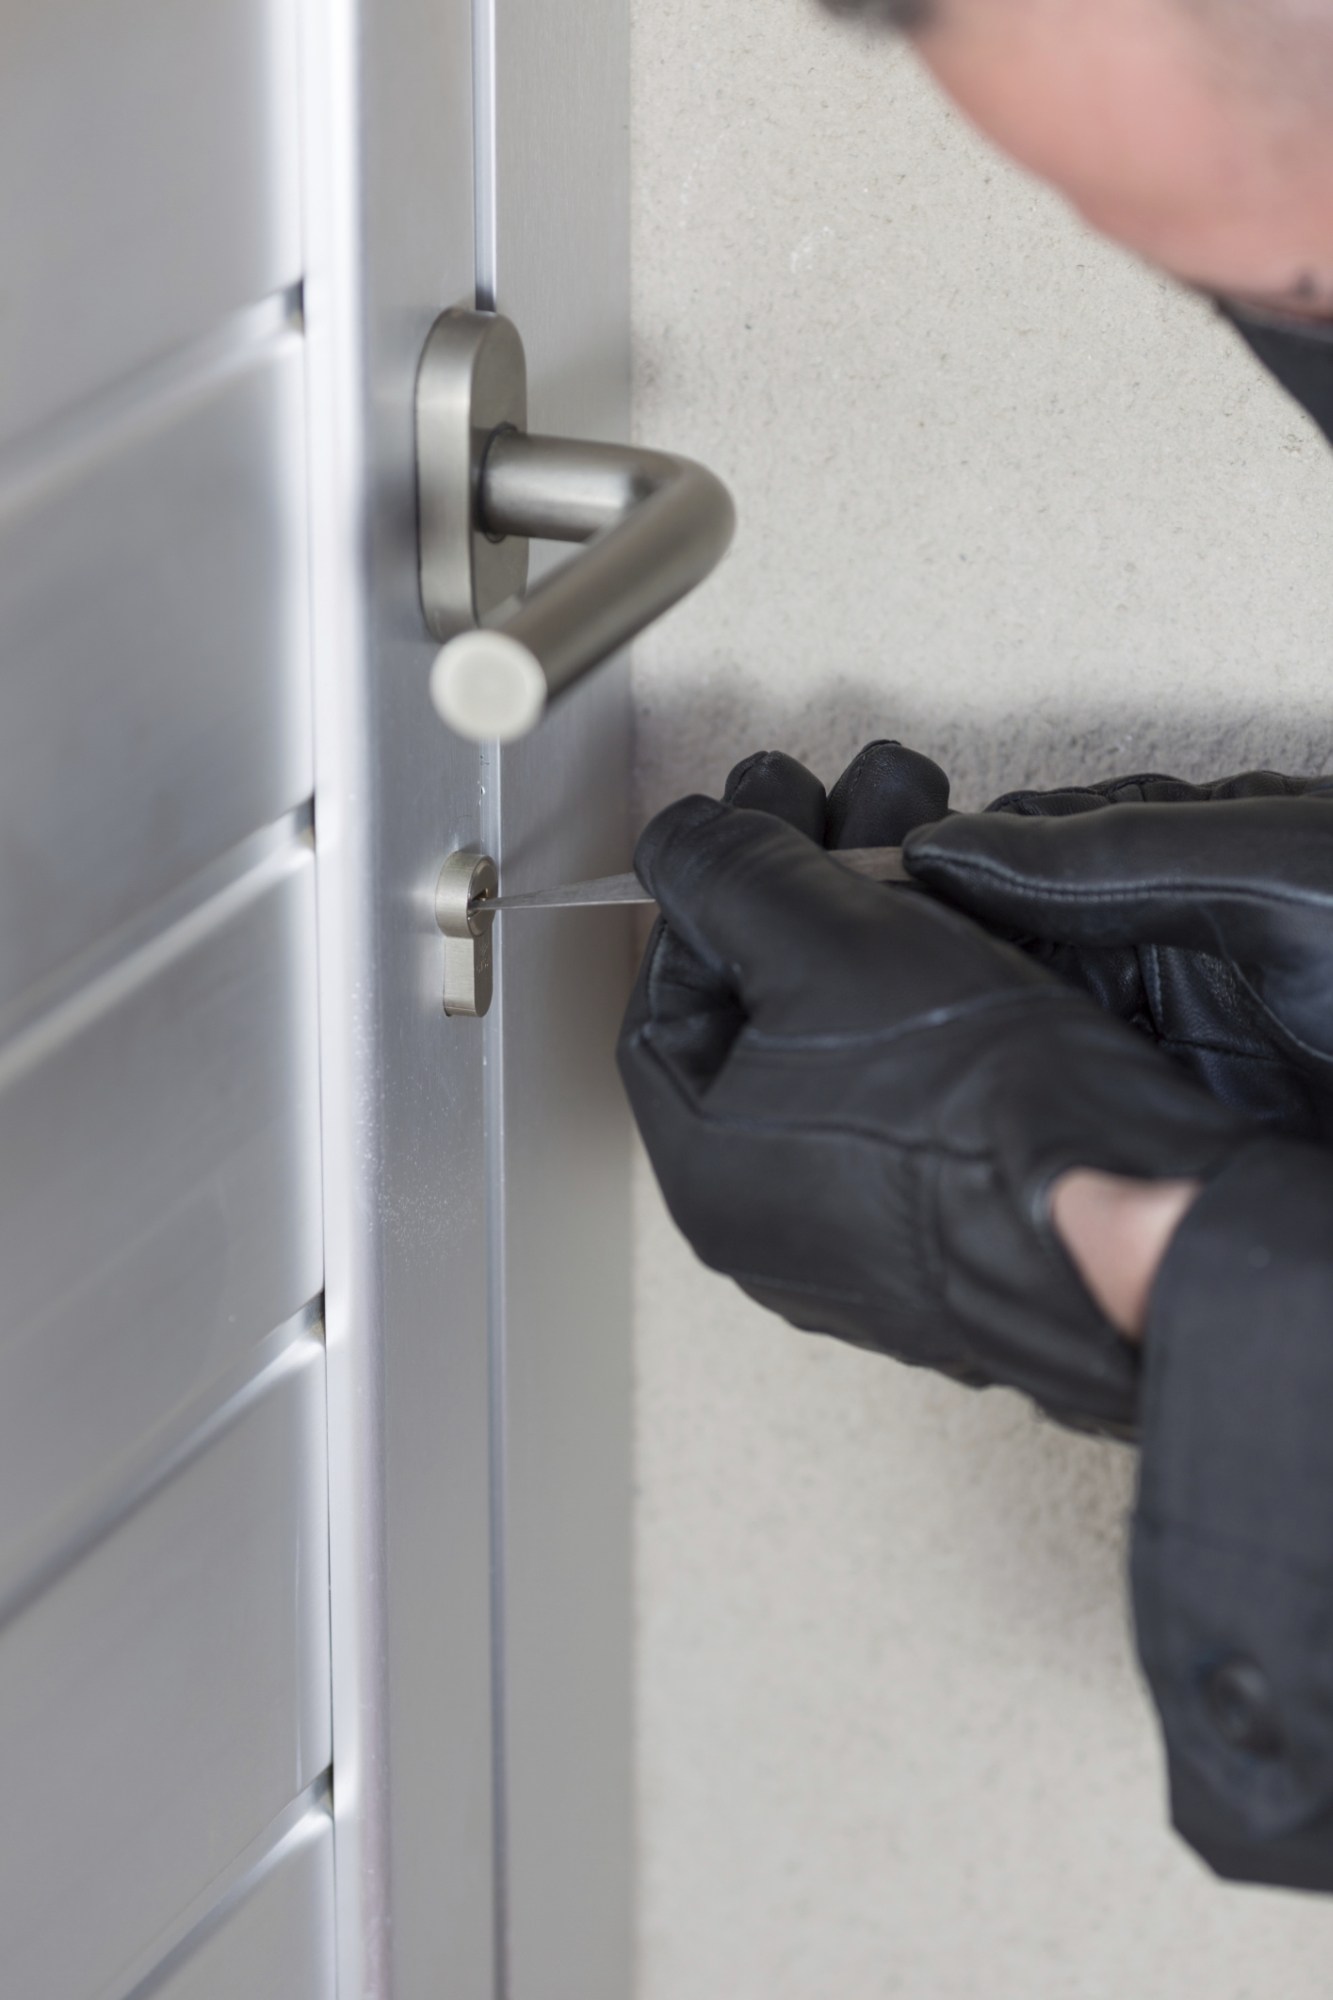 Burglars broke into flats recently.